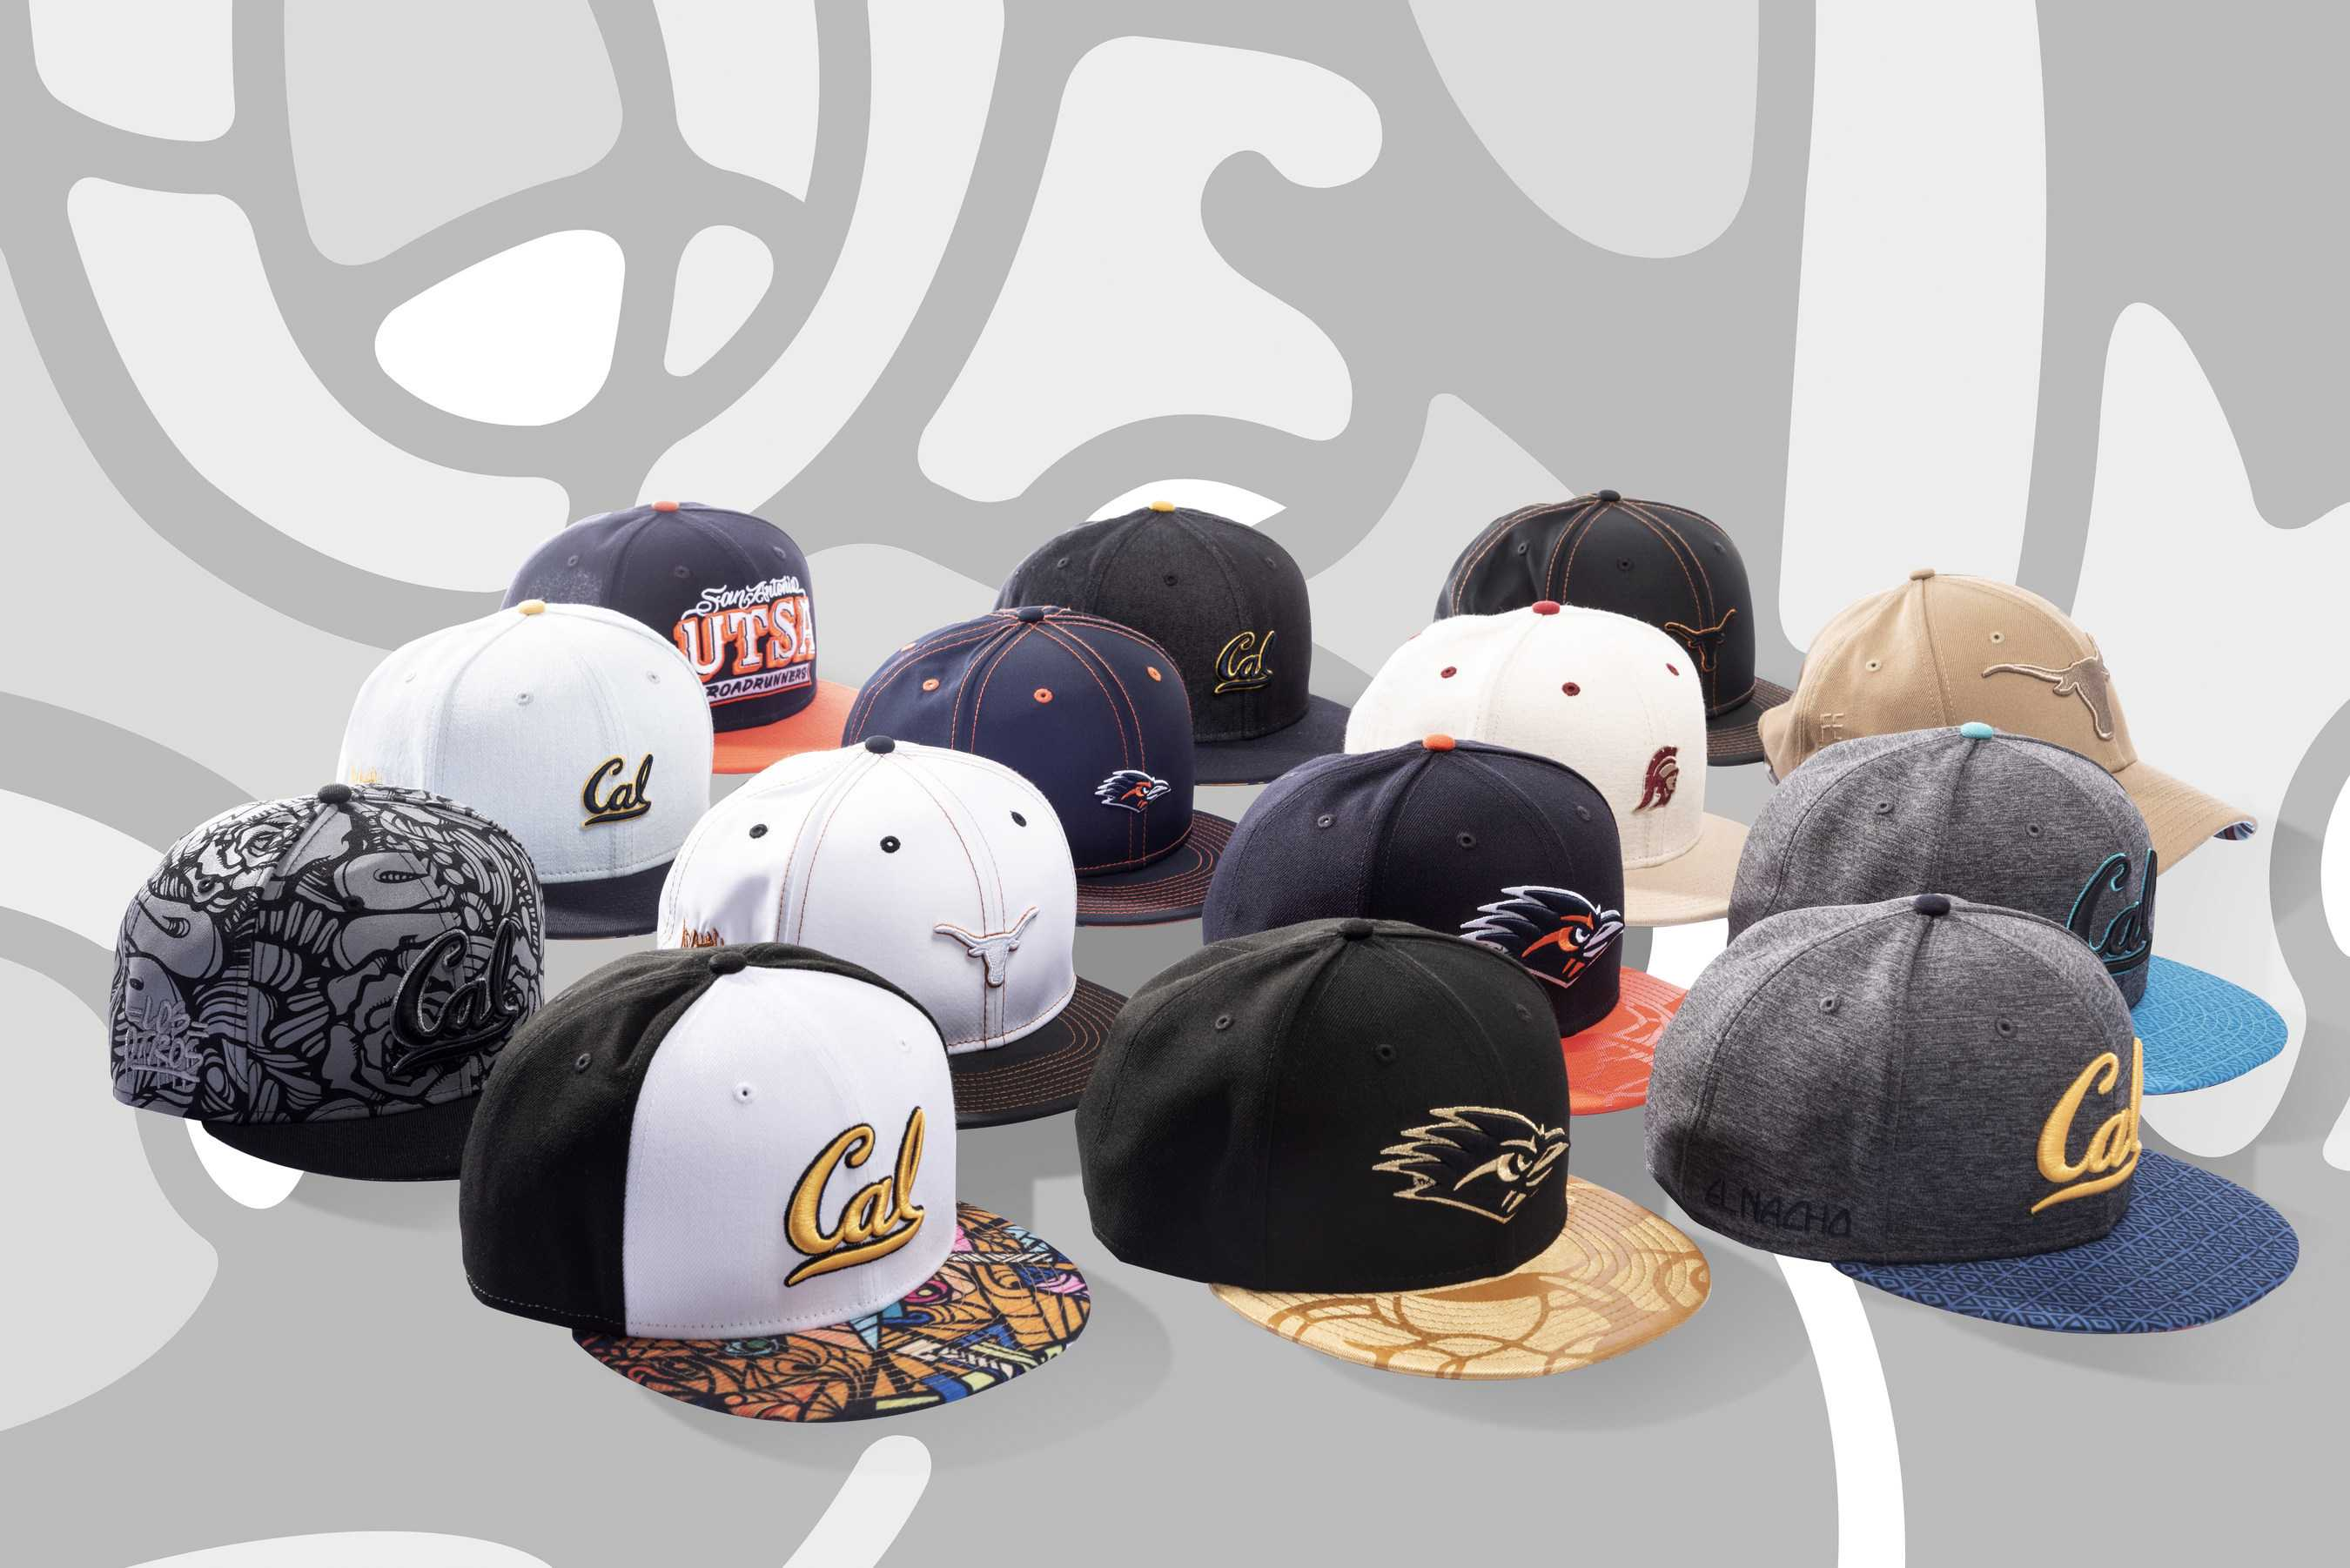 New Era Cap Launches Second Annual Hispanic Heritage Collection To Honor Hispanic Heritage Month [Fashion]